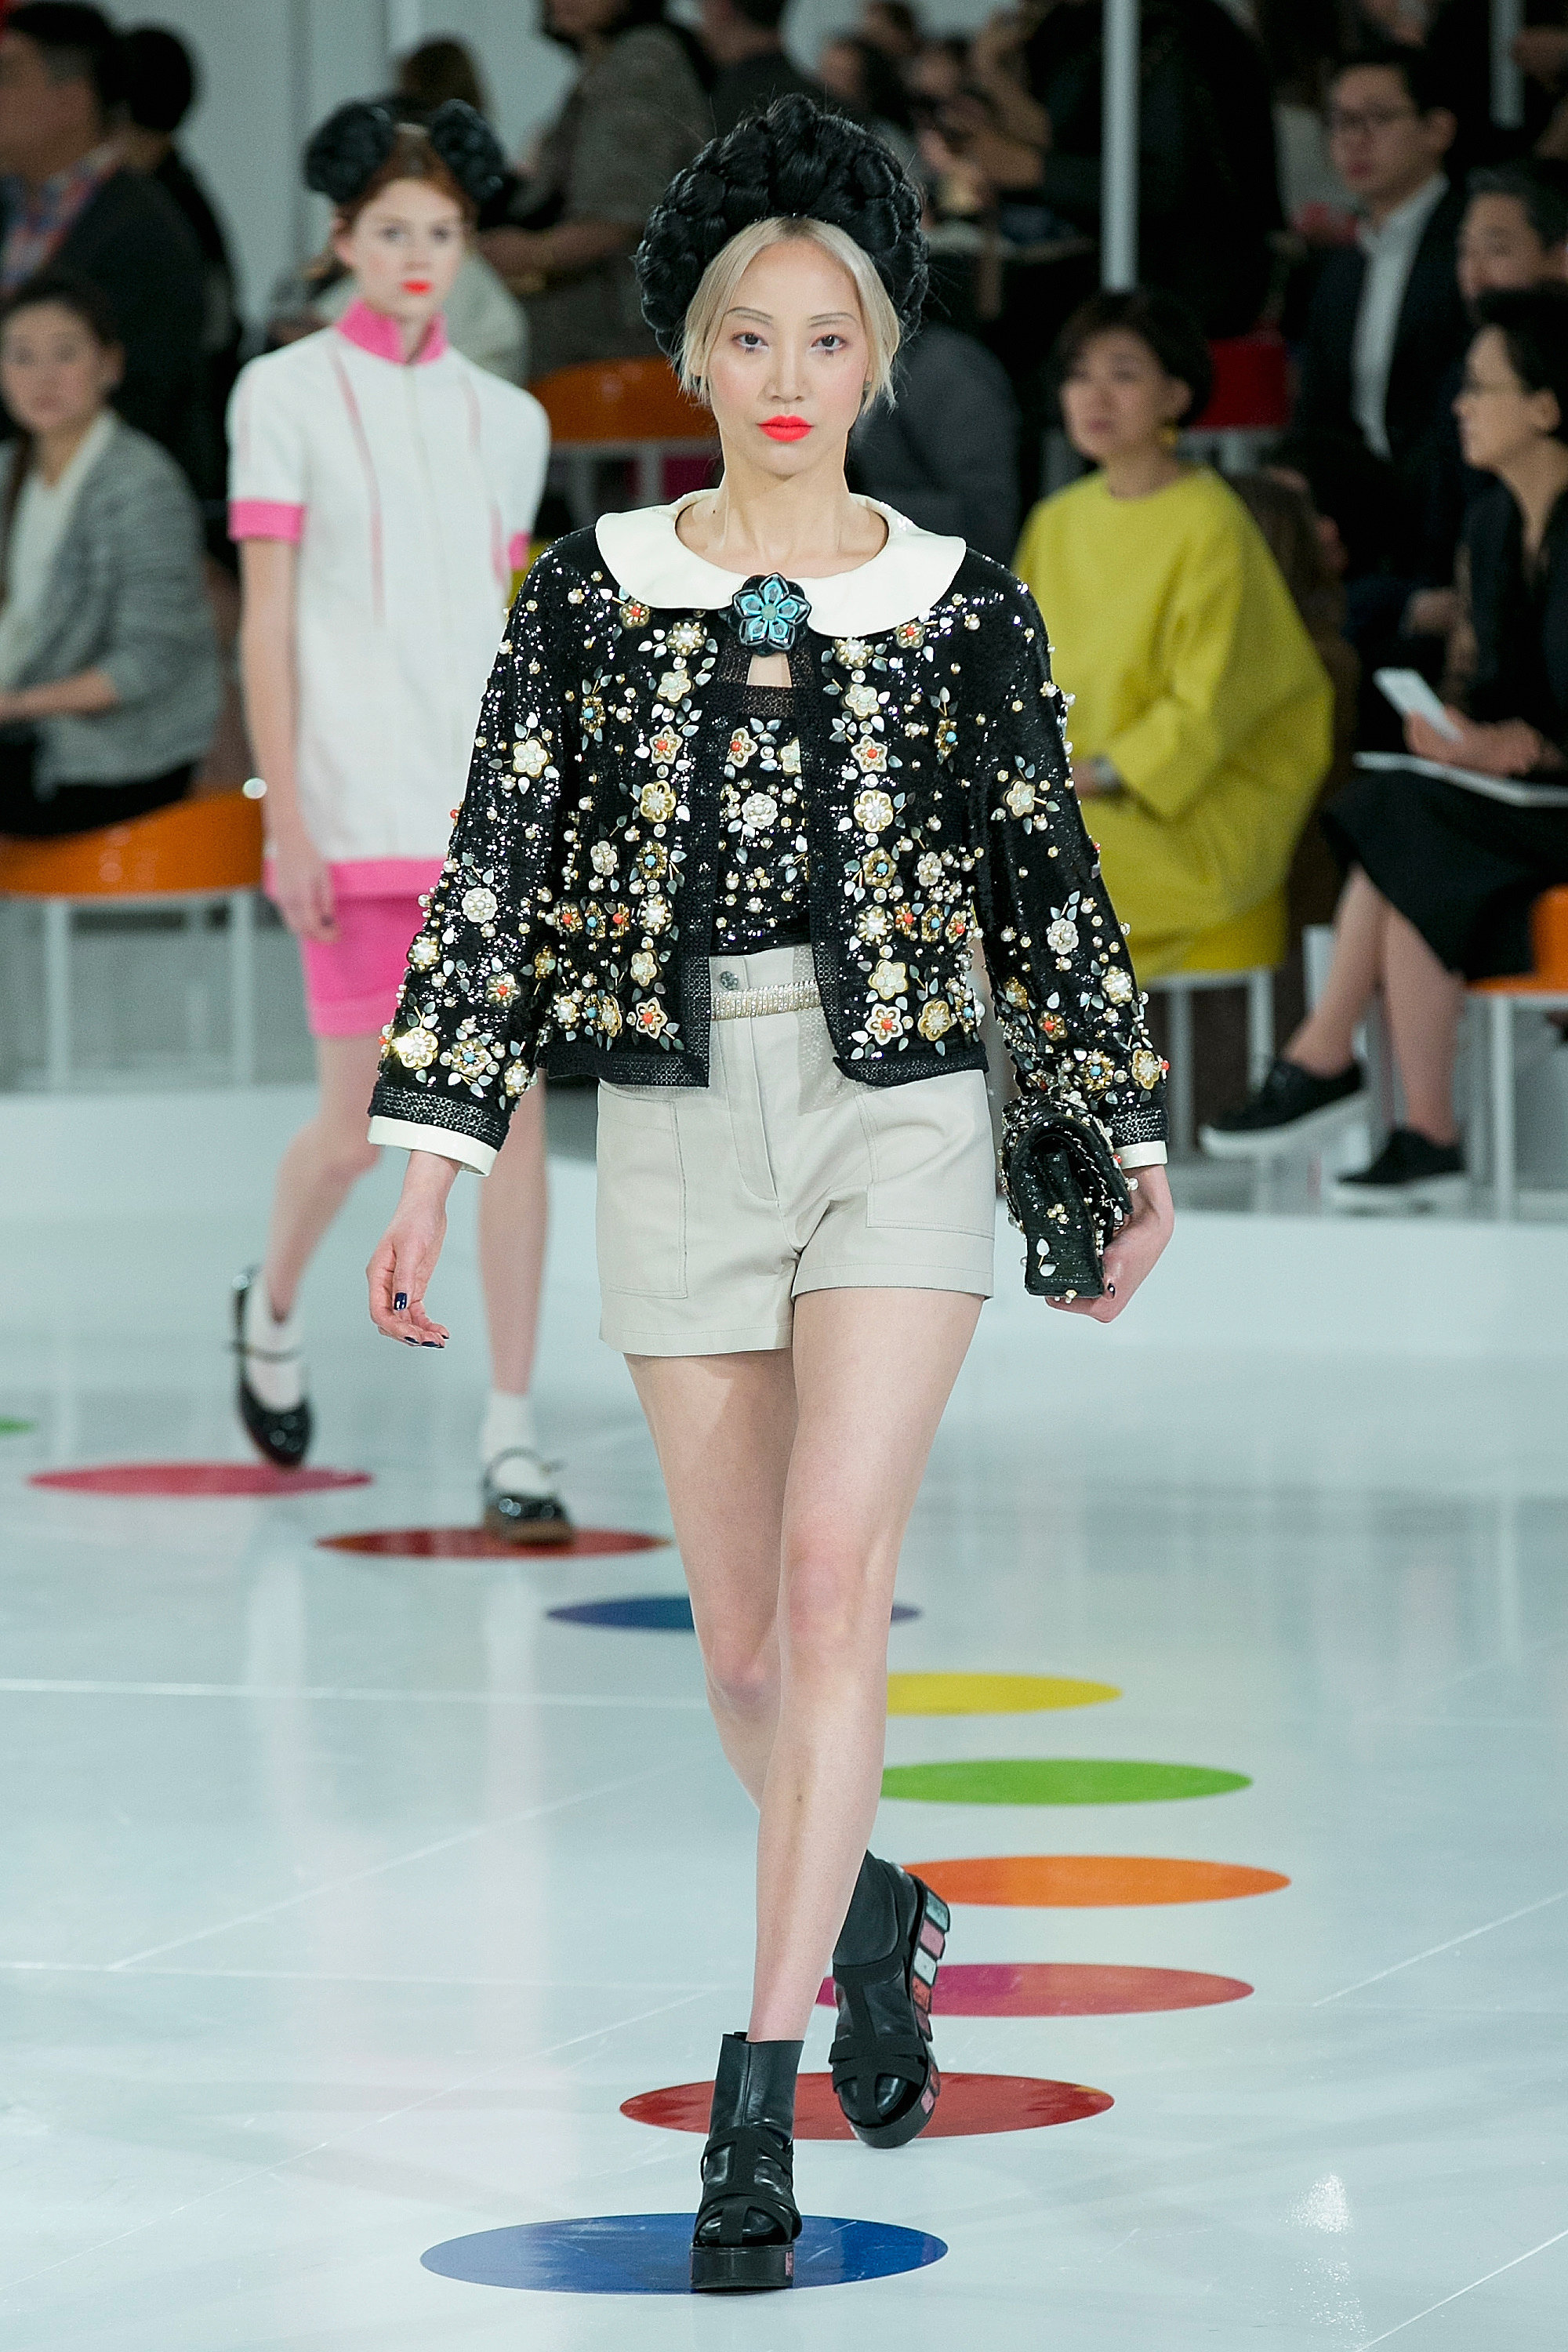 (CHANEL S/S 2016) Here's everything you need to know about the previous New York, London, Milan and Paris Fashion Week + the S/S 2016 trends you should look out for this upcoming season. Click to read more!